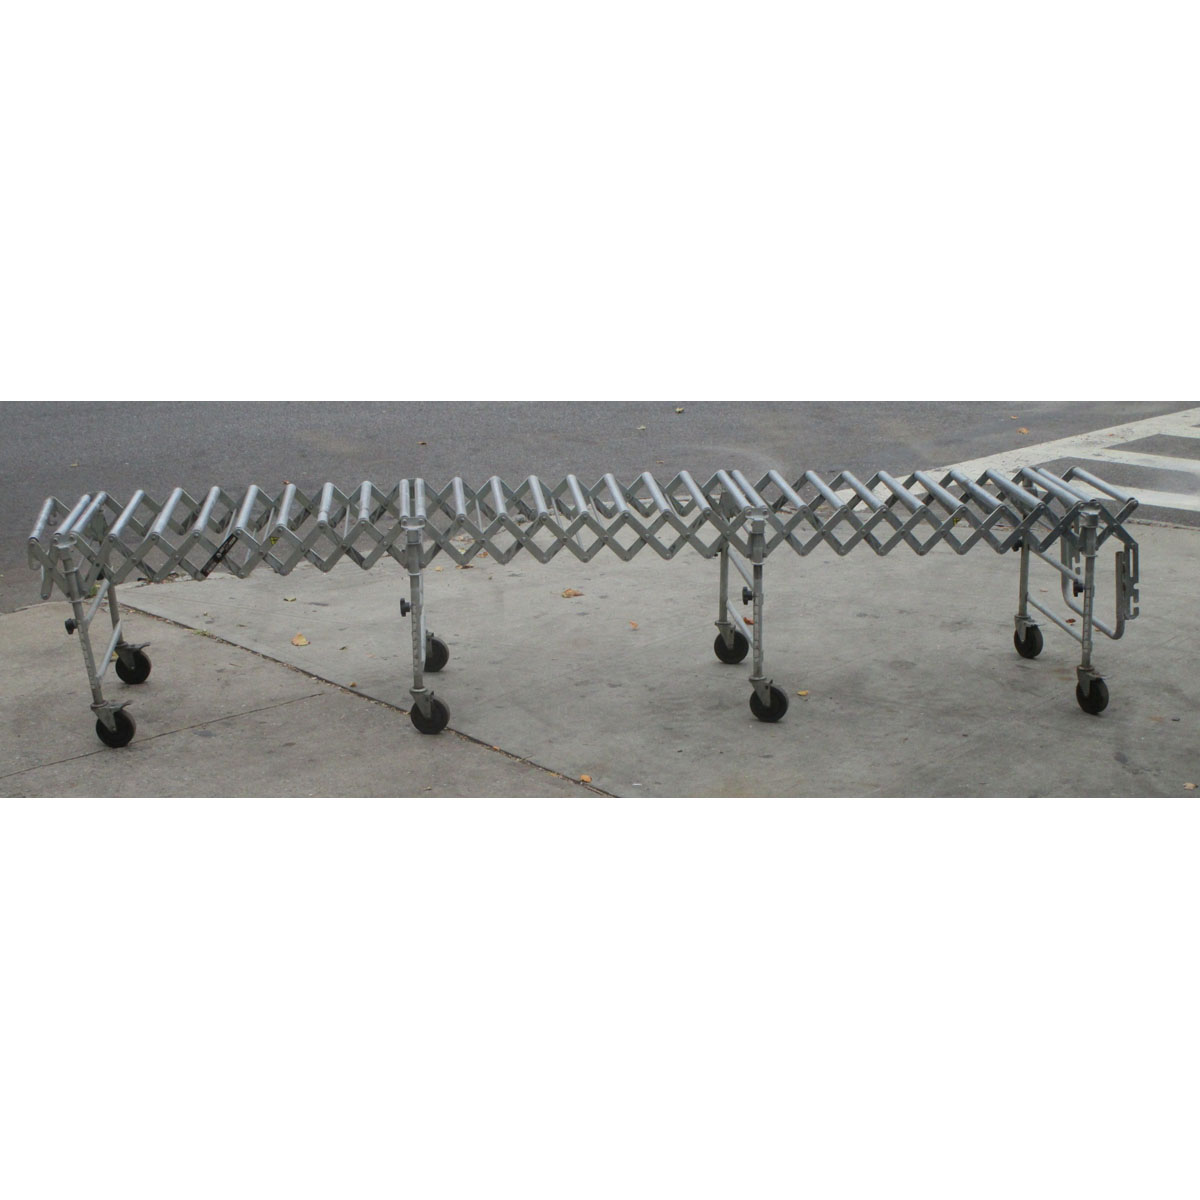 Nestafle-Roller-Conveyor-Expandable-Up-To-Feet-Very Product Image 1556